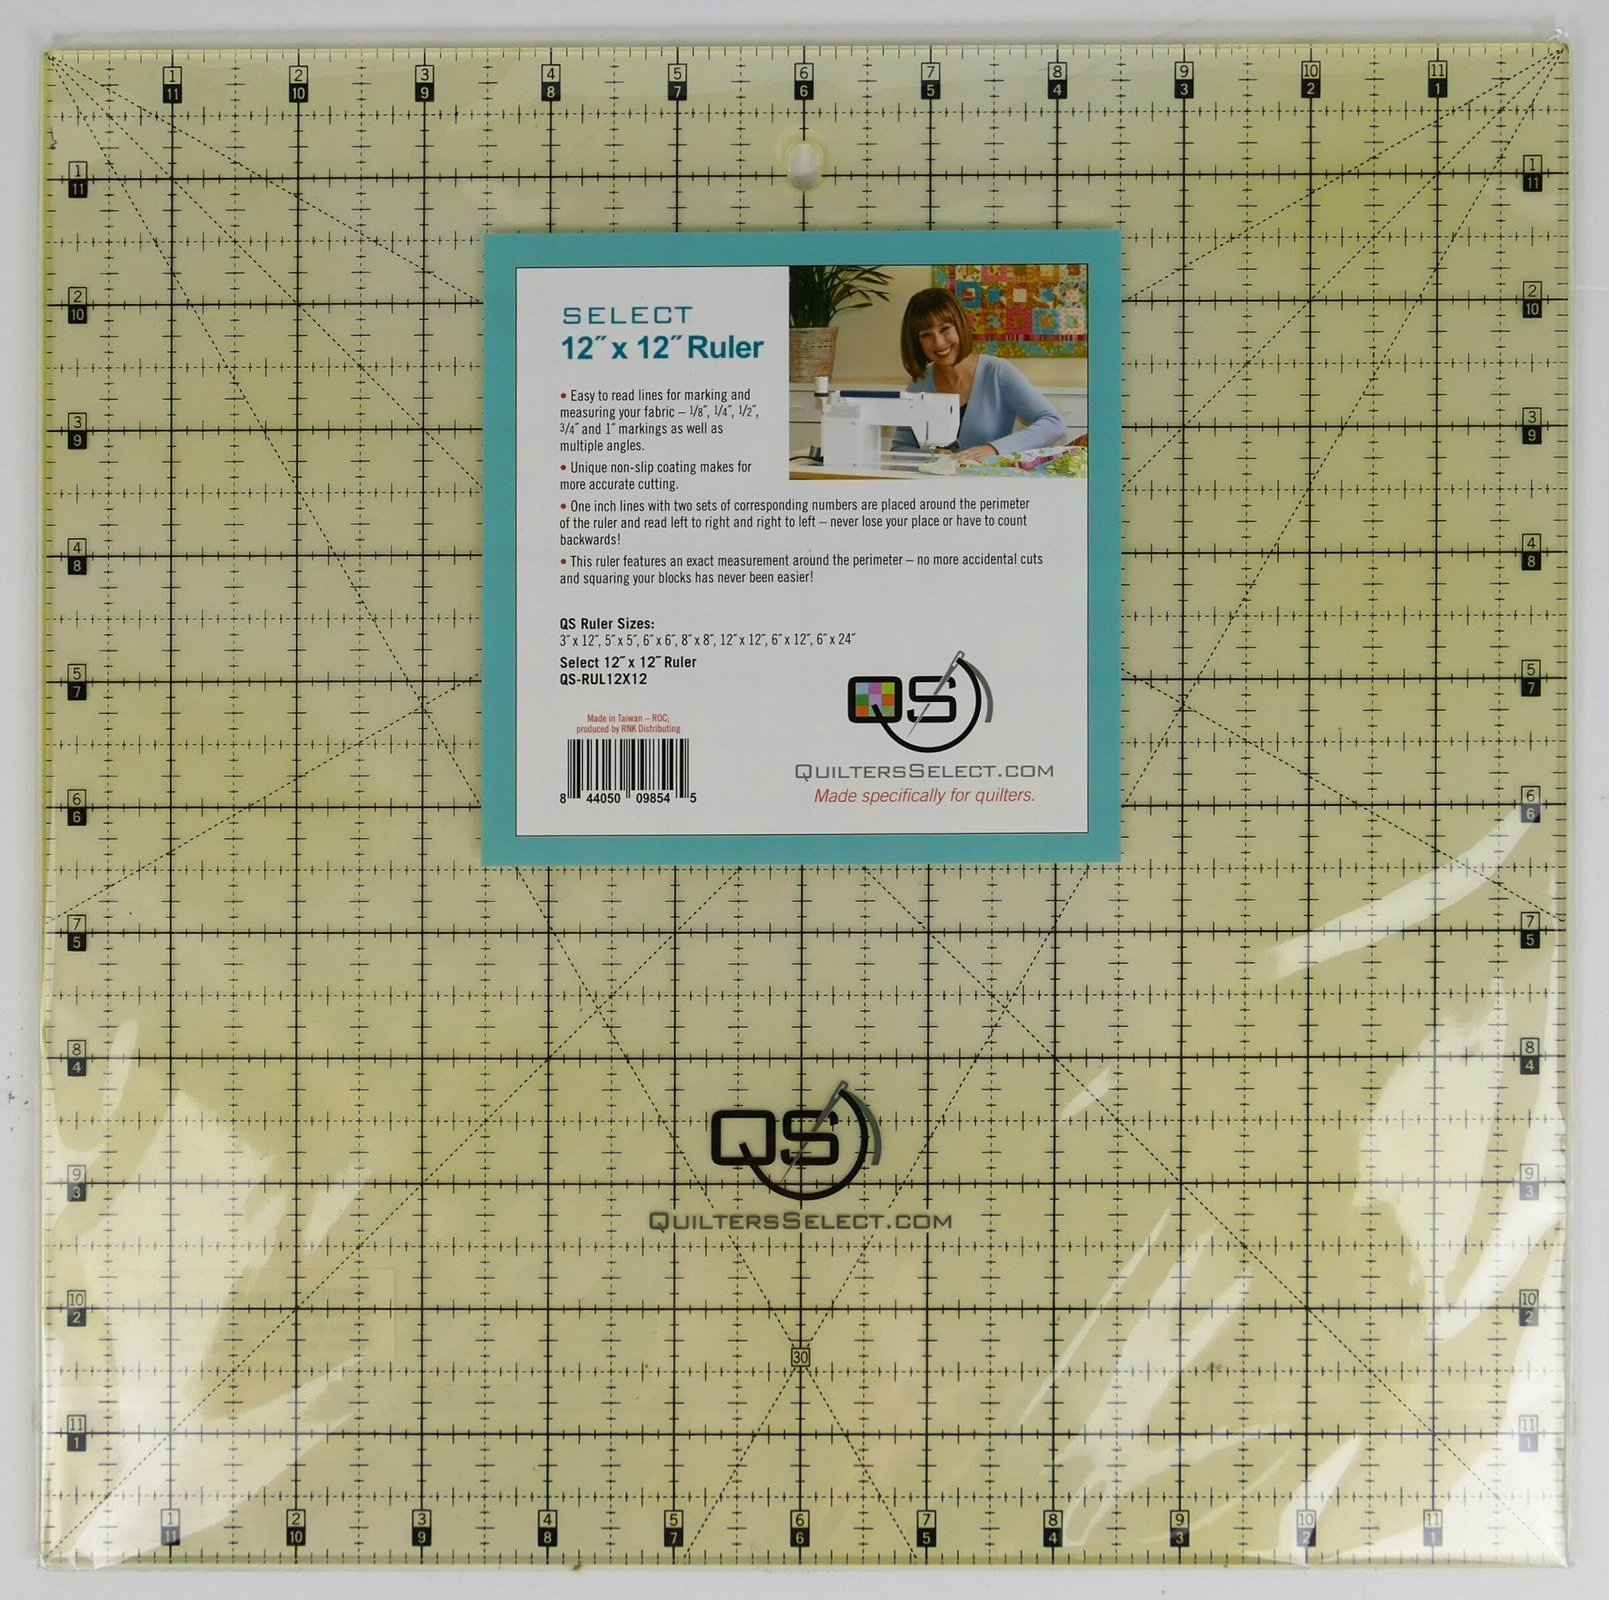 Quilters Select 12 x 12 non-slip Ruler